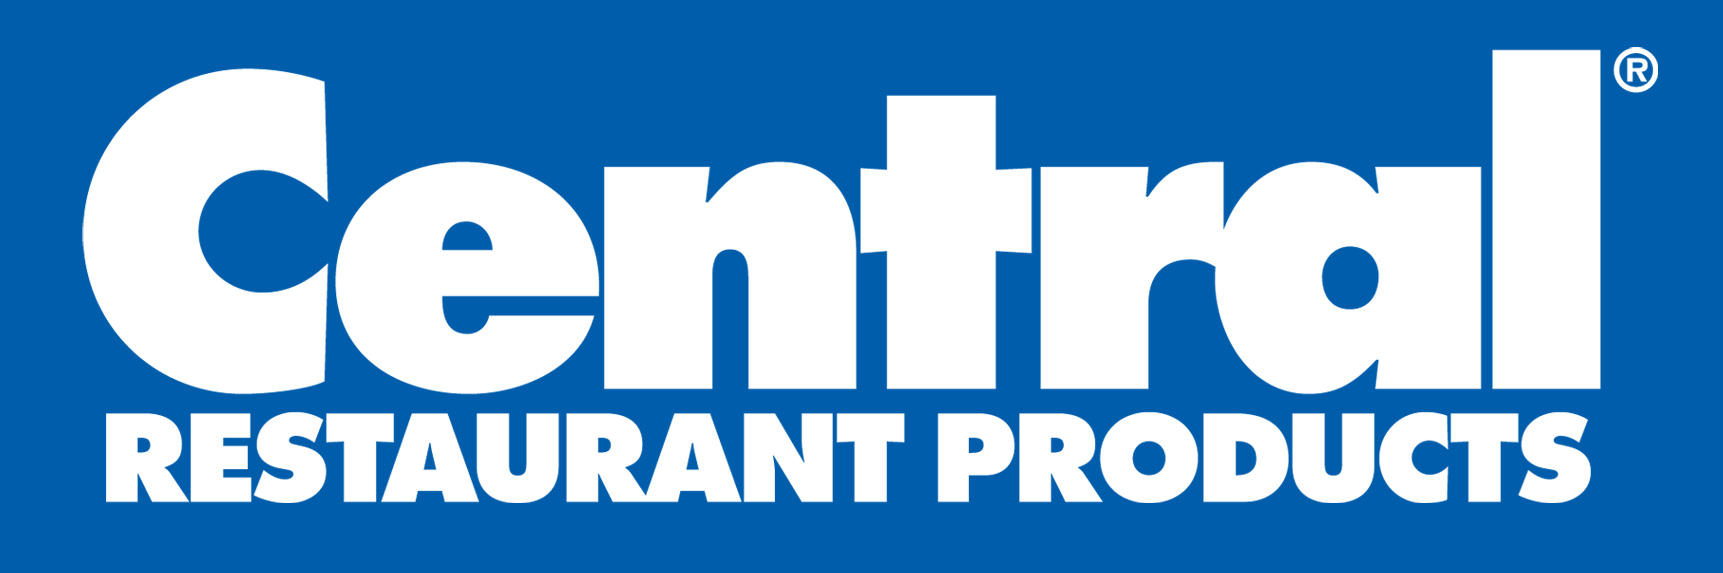 Central Restaurant Products Company Logo